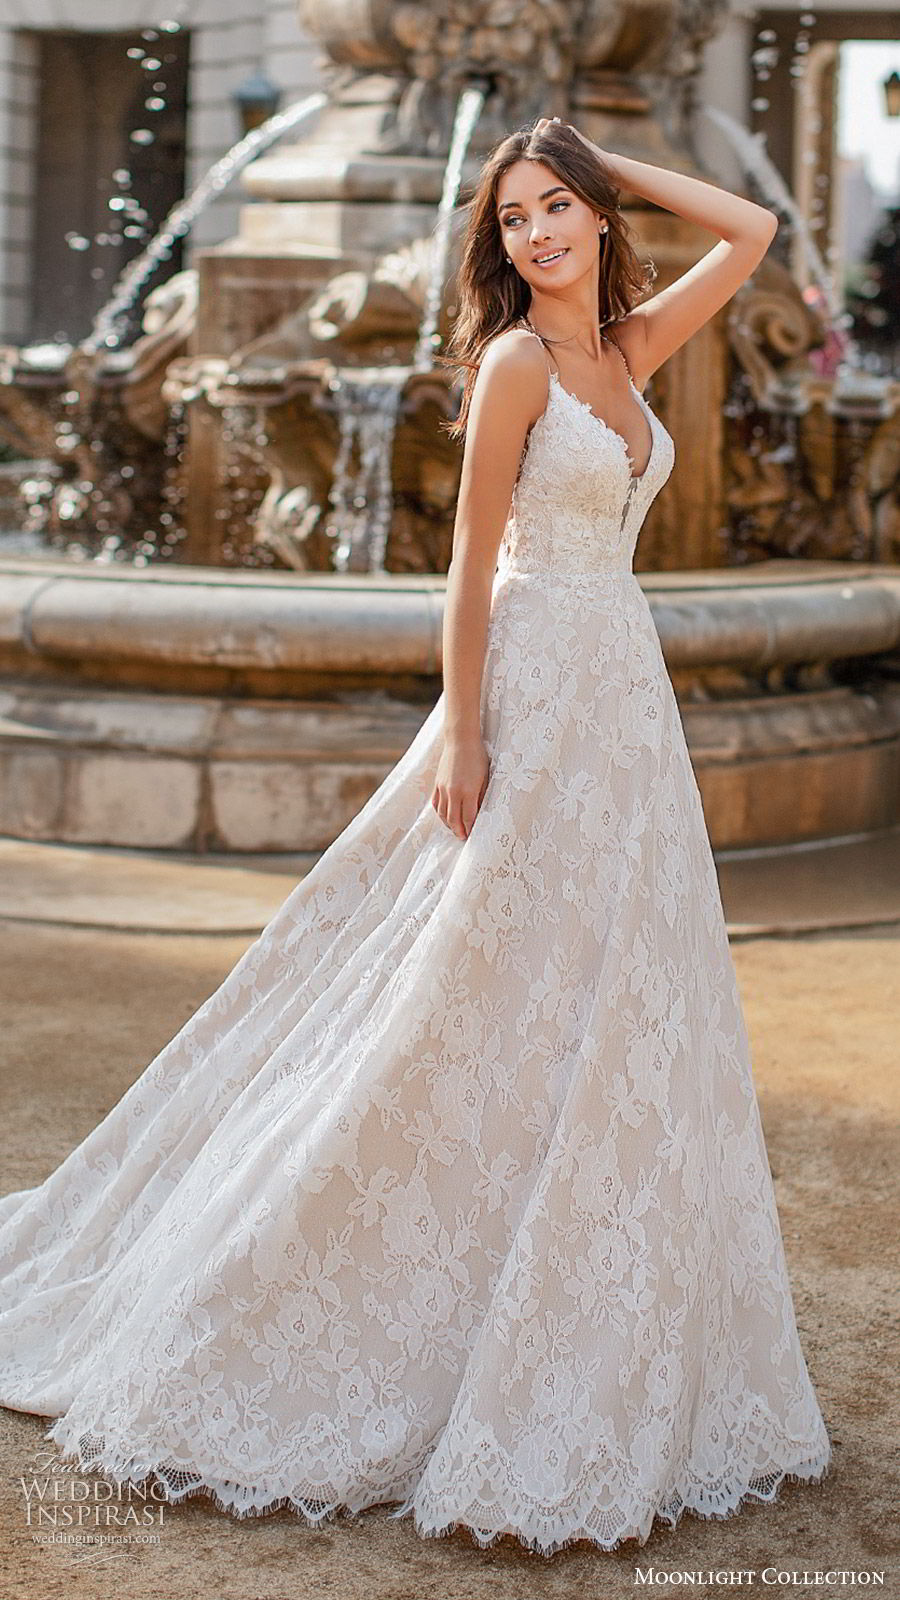 moonlight collection fall 2019 bridal sleeveless thin straps plunging v neckling fully embellished lace a line ball gown wedding dress (10) romantic princess chapel train mv